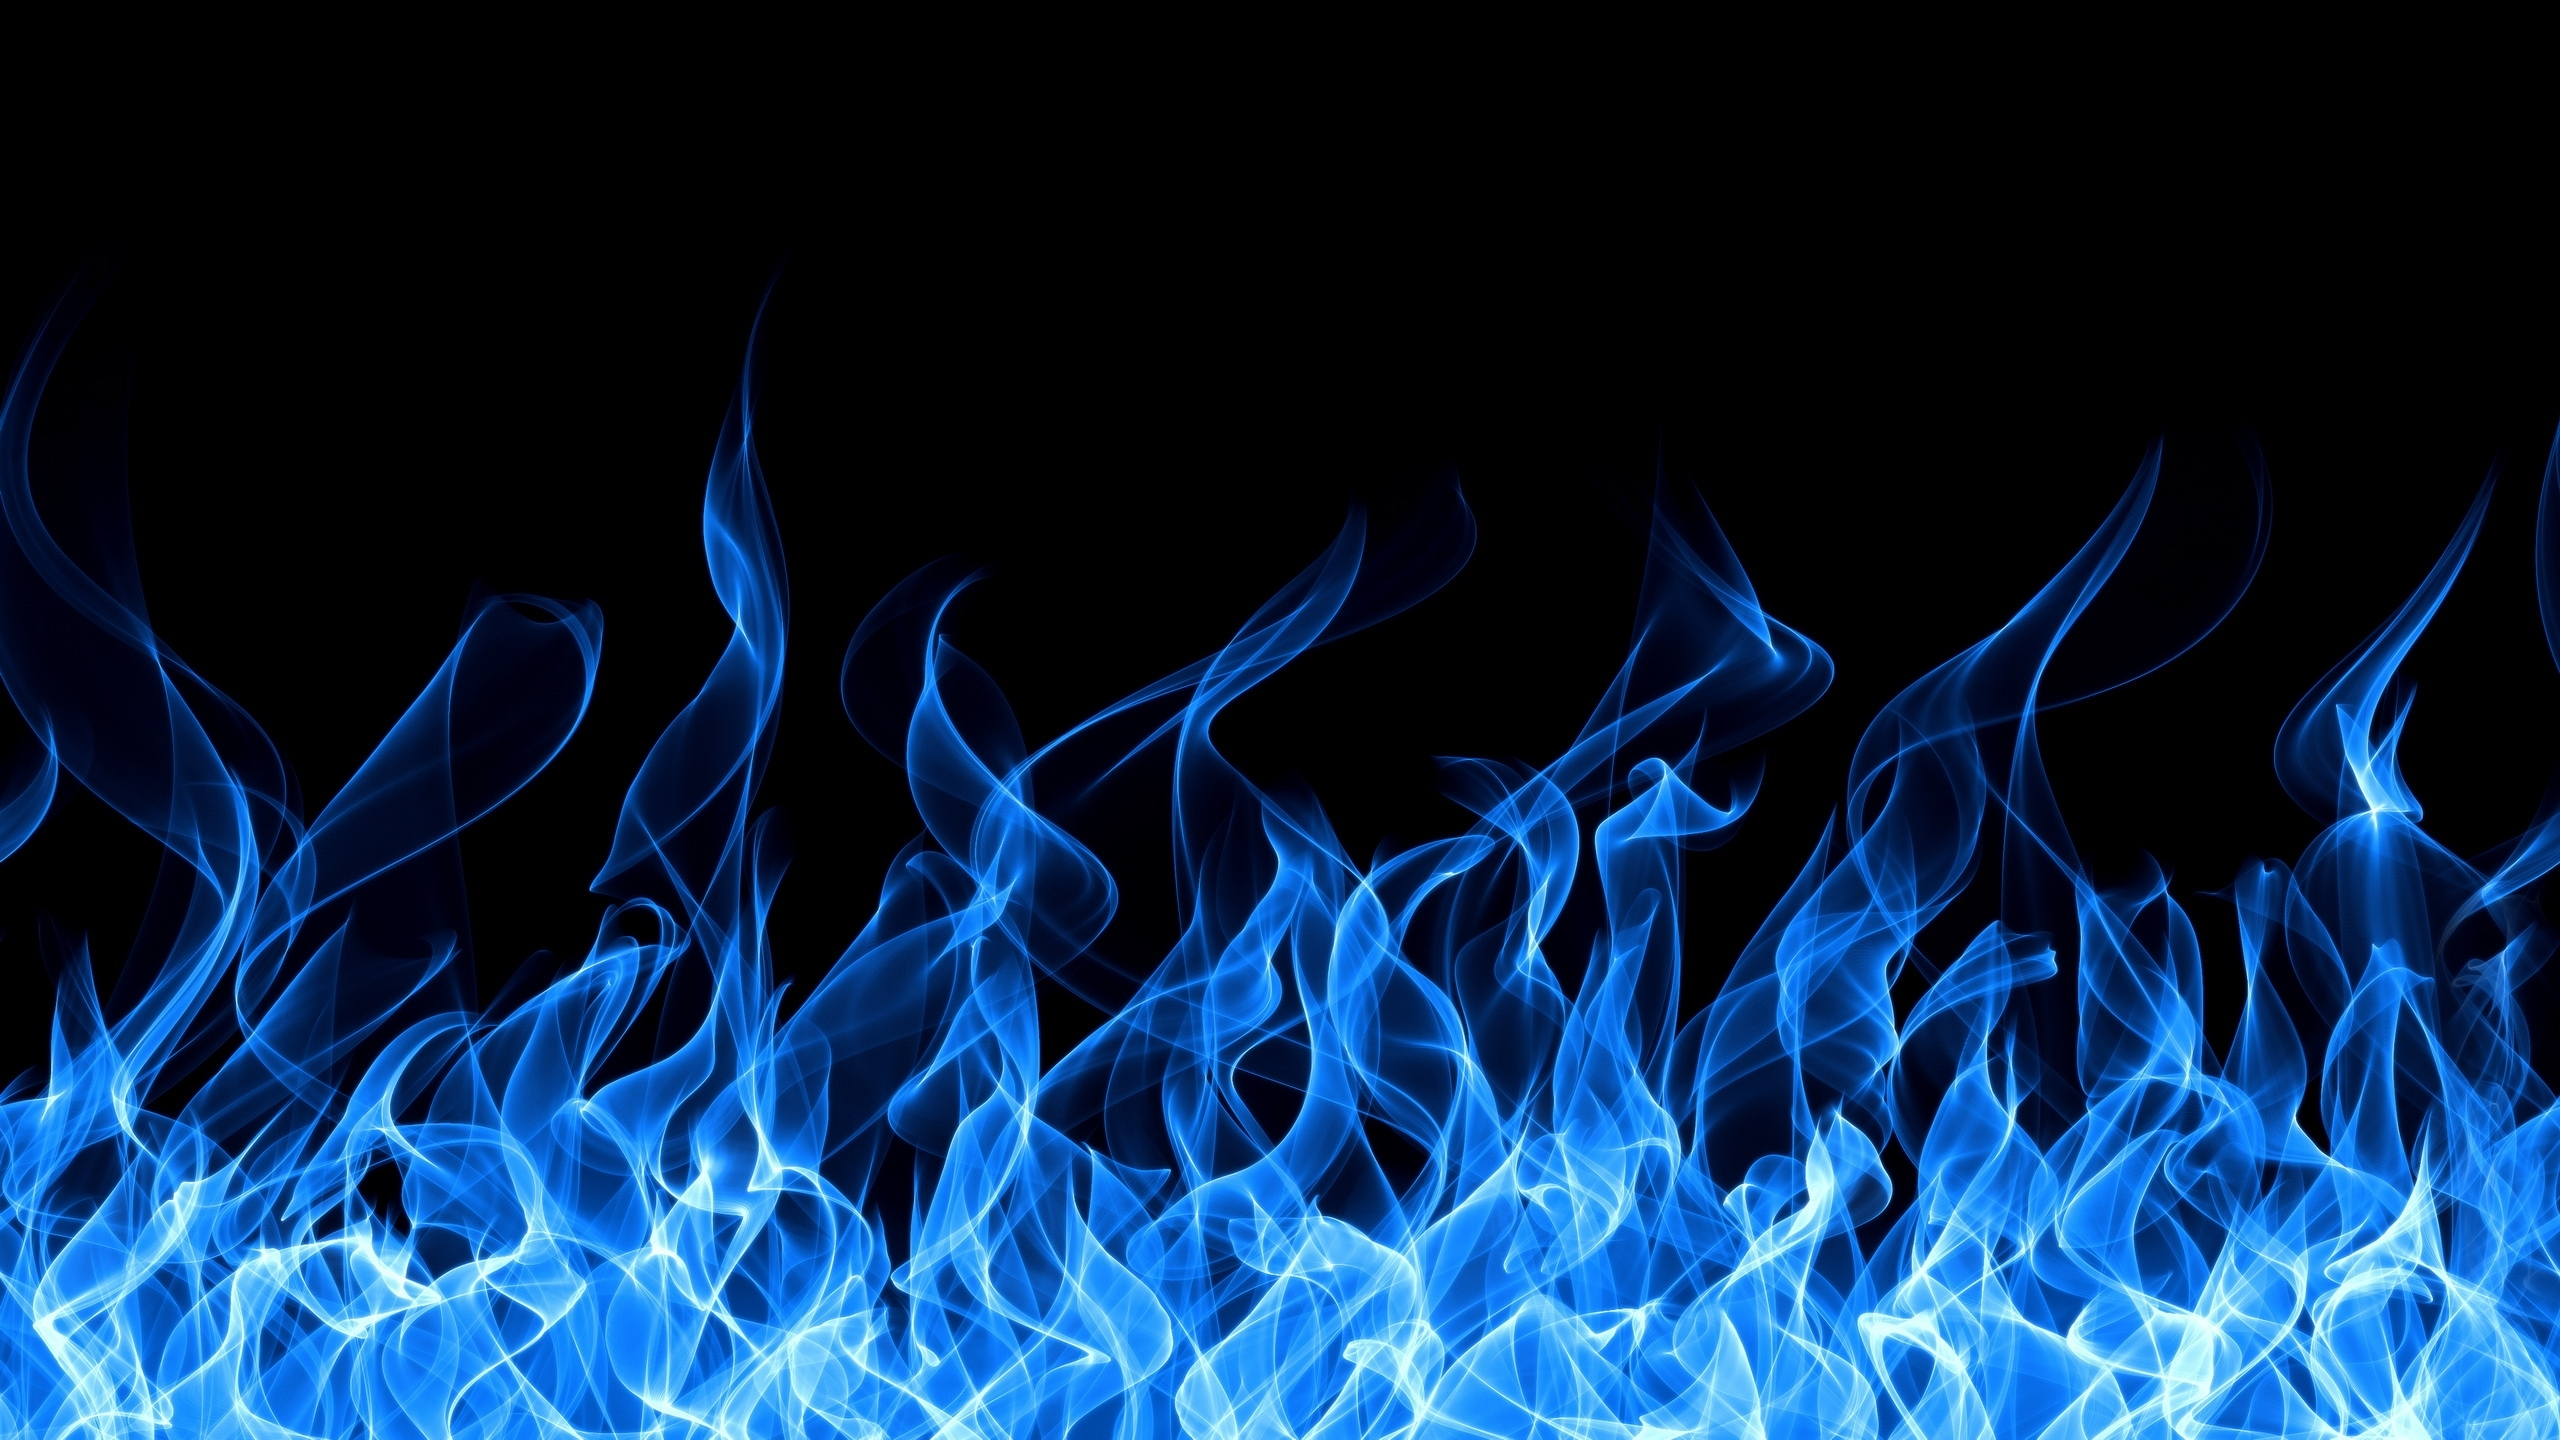 beautiful-blue-fire-desktop-wallpapers - wallpaper.wiki